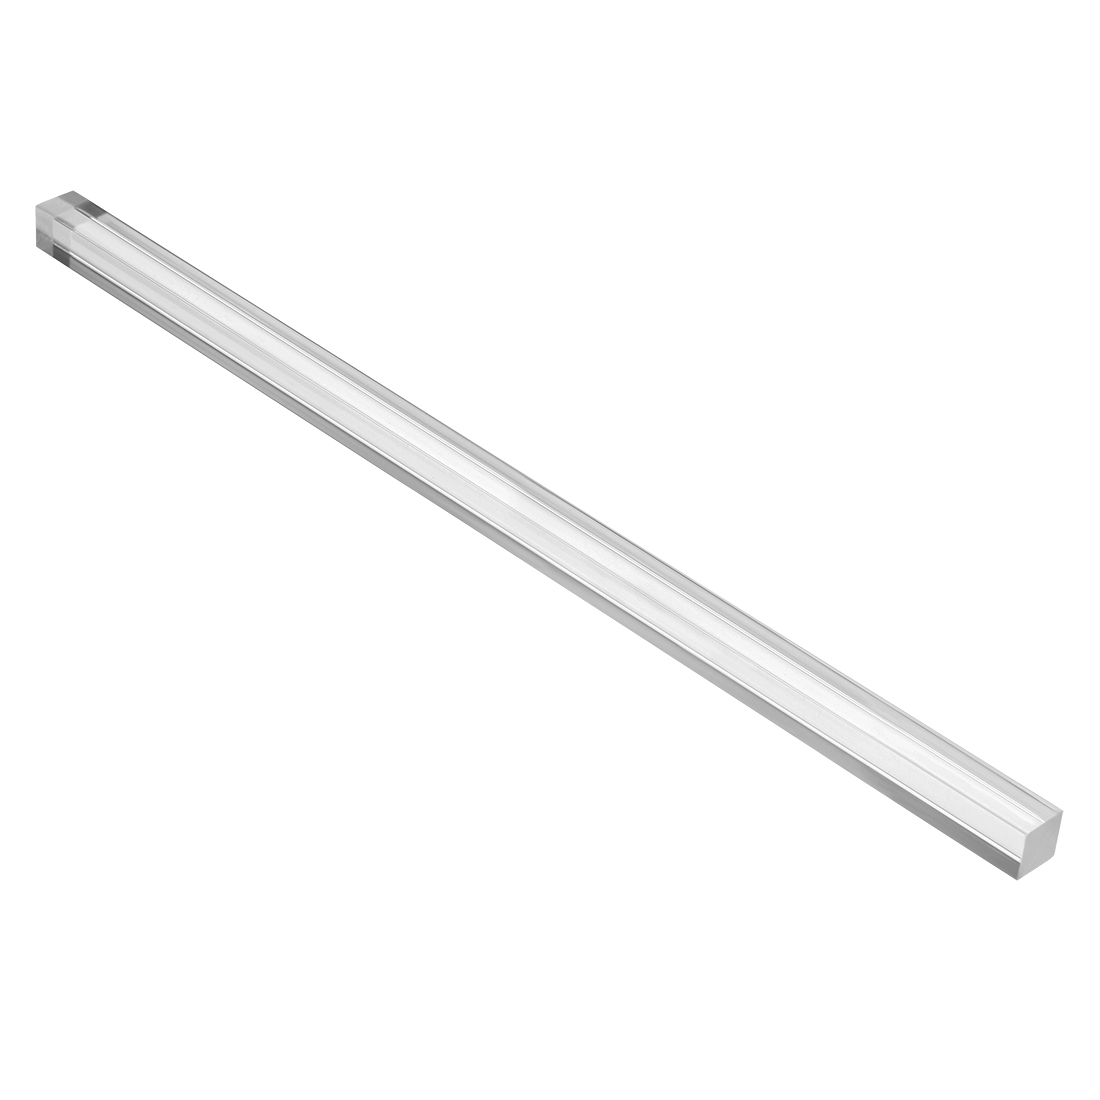 Acrylic Rectangular Shaped Rod PMMA Bar Clear 10mmx10mm 10 Inch Long